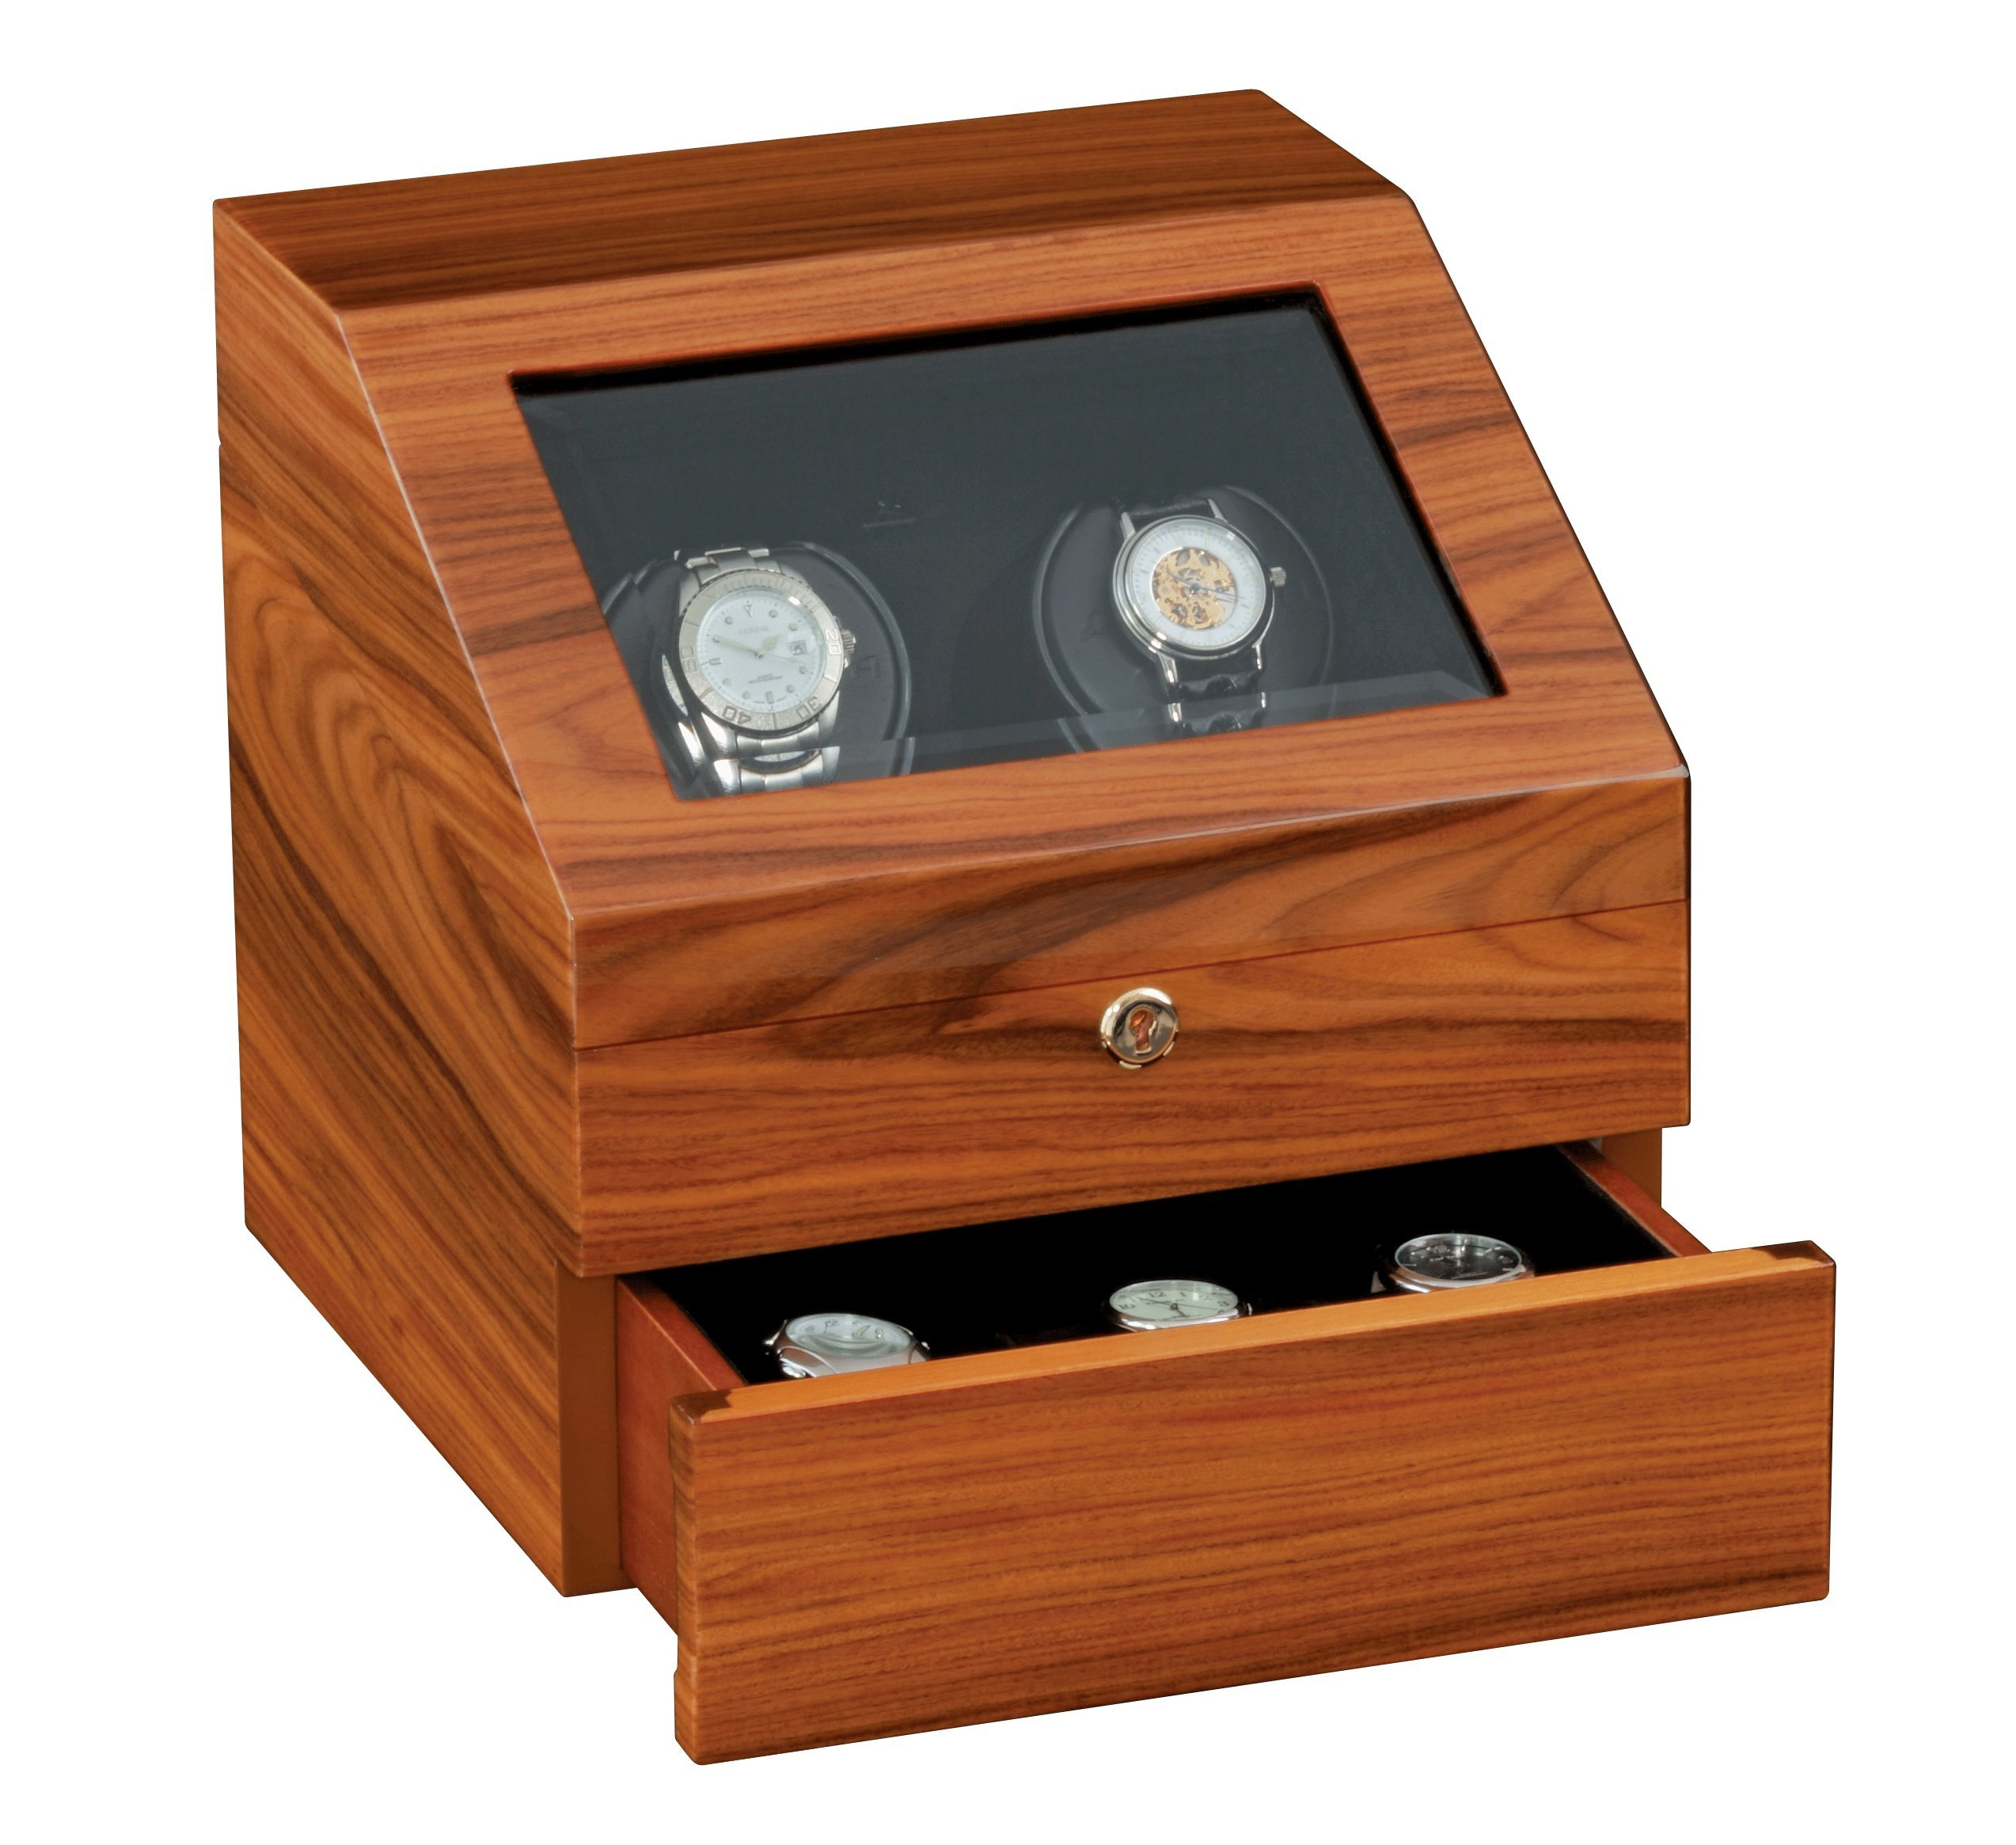 Siena Two Executive Teakwood Watchwinder by Orbita Model W13025 by Orbita